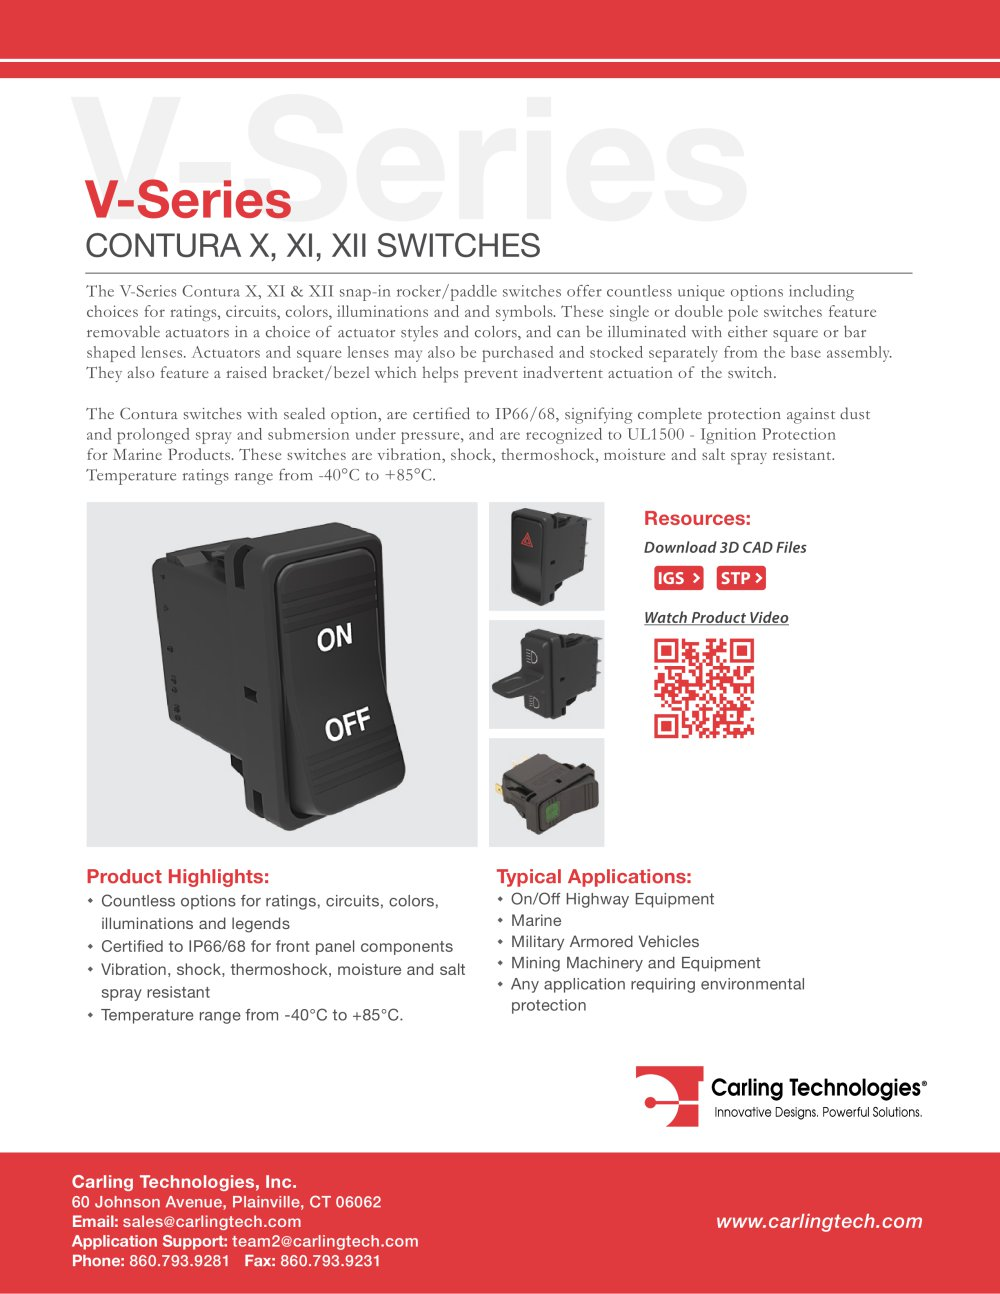 v series contura x xi xii carling technologies pdf catalogsv series contura x xi xii 1 14 pages